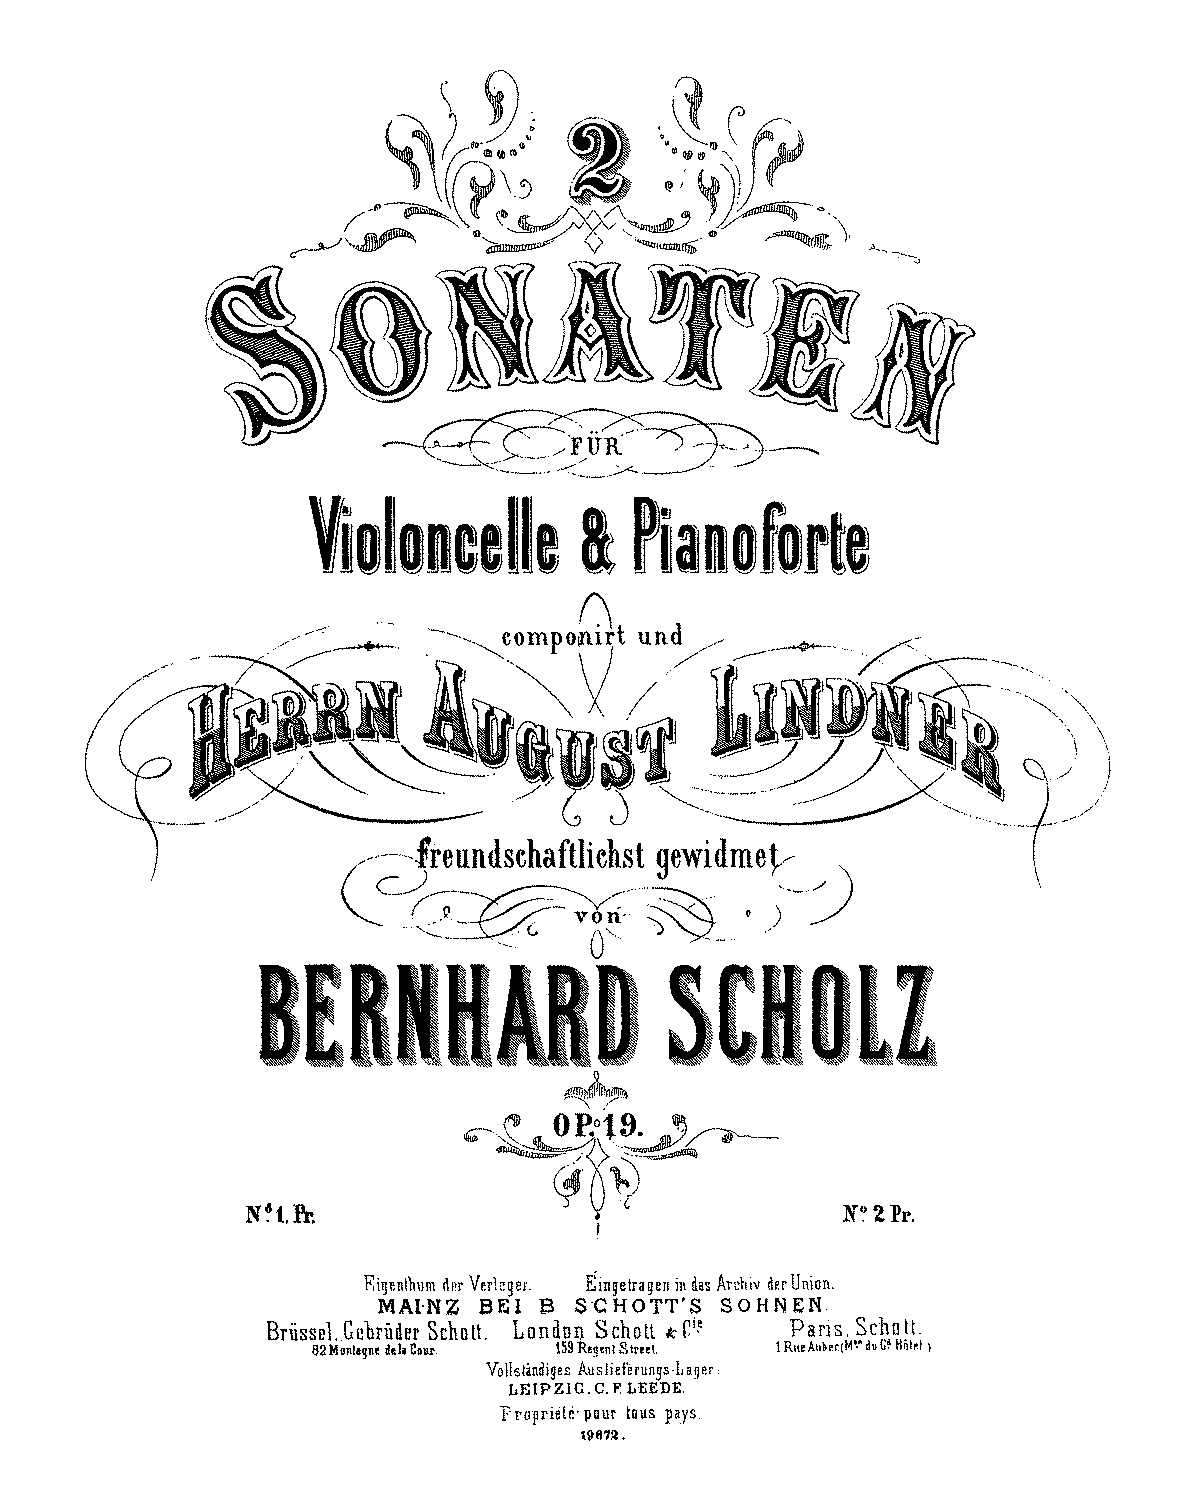 PMLP528145-BScholz 2 Cello Sonatas, Op.19 No.2 pianoscore.pdf